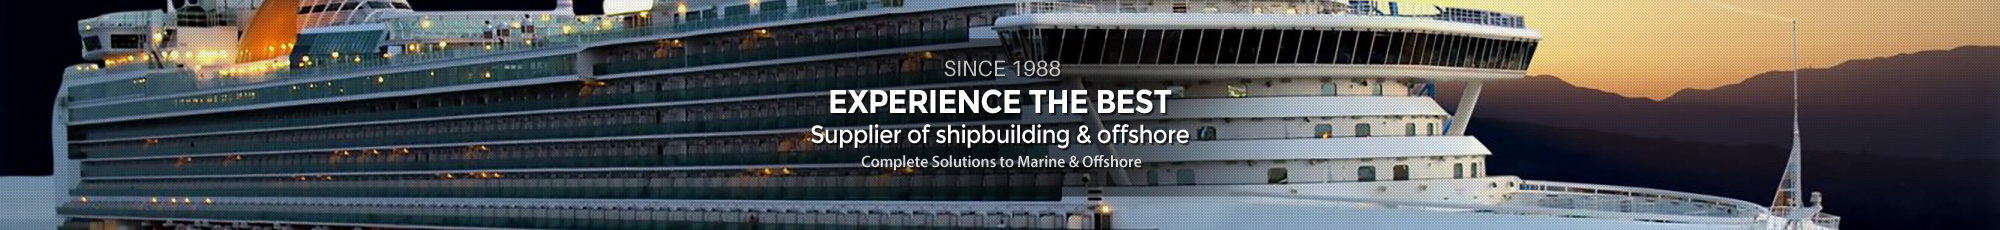 Experience the Best     Supplier of shipbuilding-offishore-cruise ships